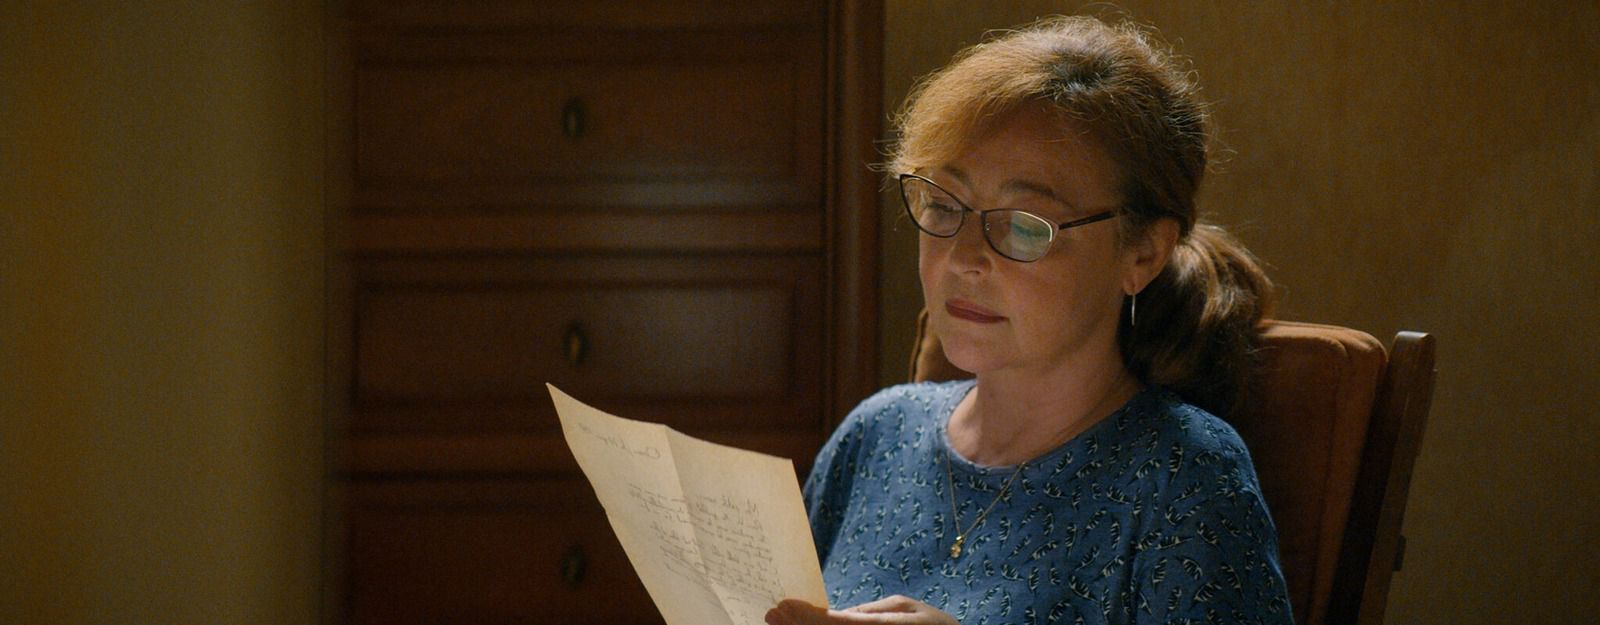 Des Hommes : Catherine Frot